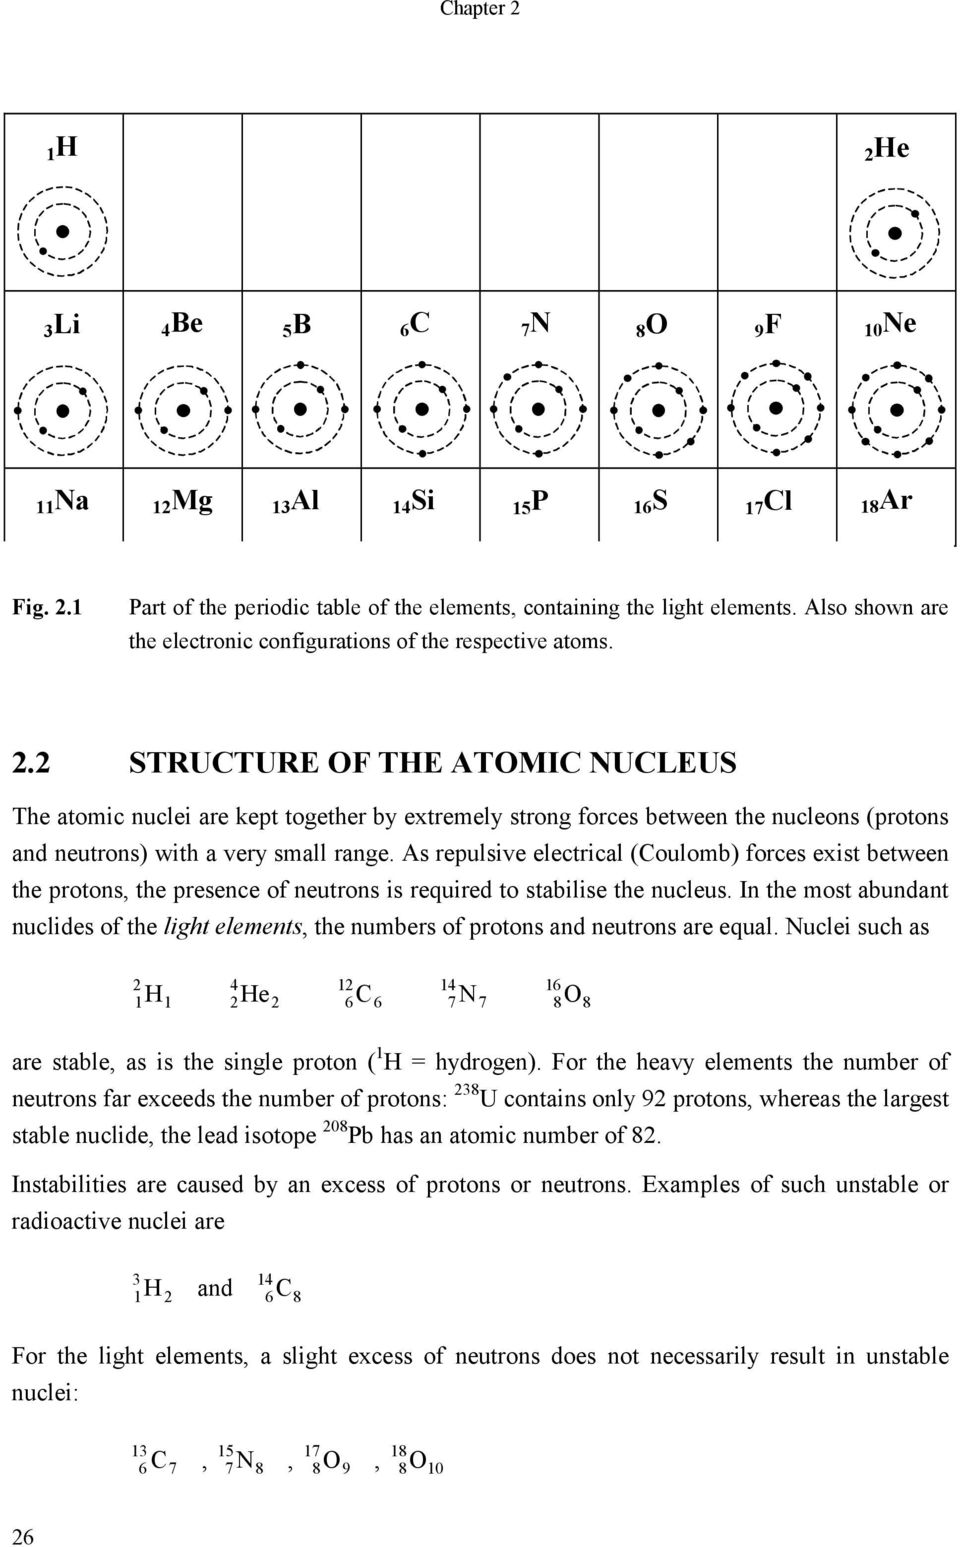 2 STRUCTURE OF THE ATOMIC NUCLEUS The atomic nuclei are kept together by extremely strong forces between the nucleons (protons and neutrons) with a very small range.